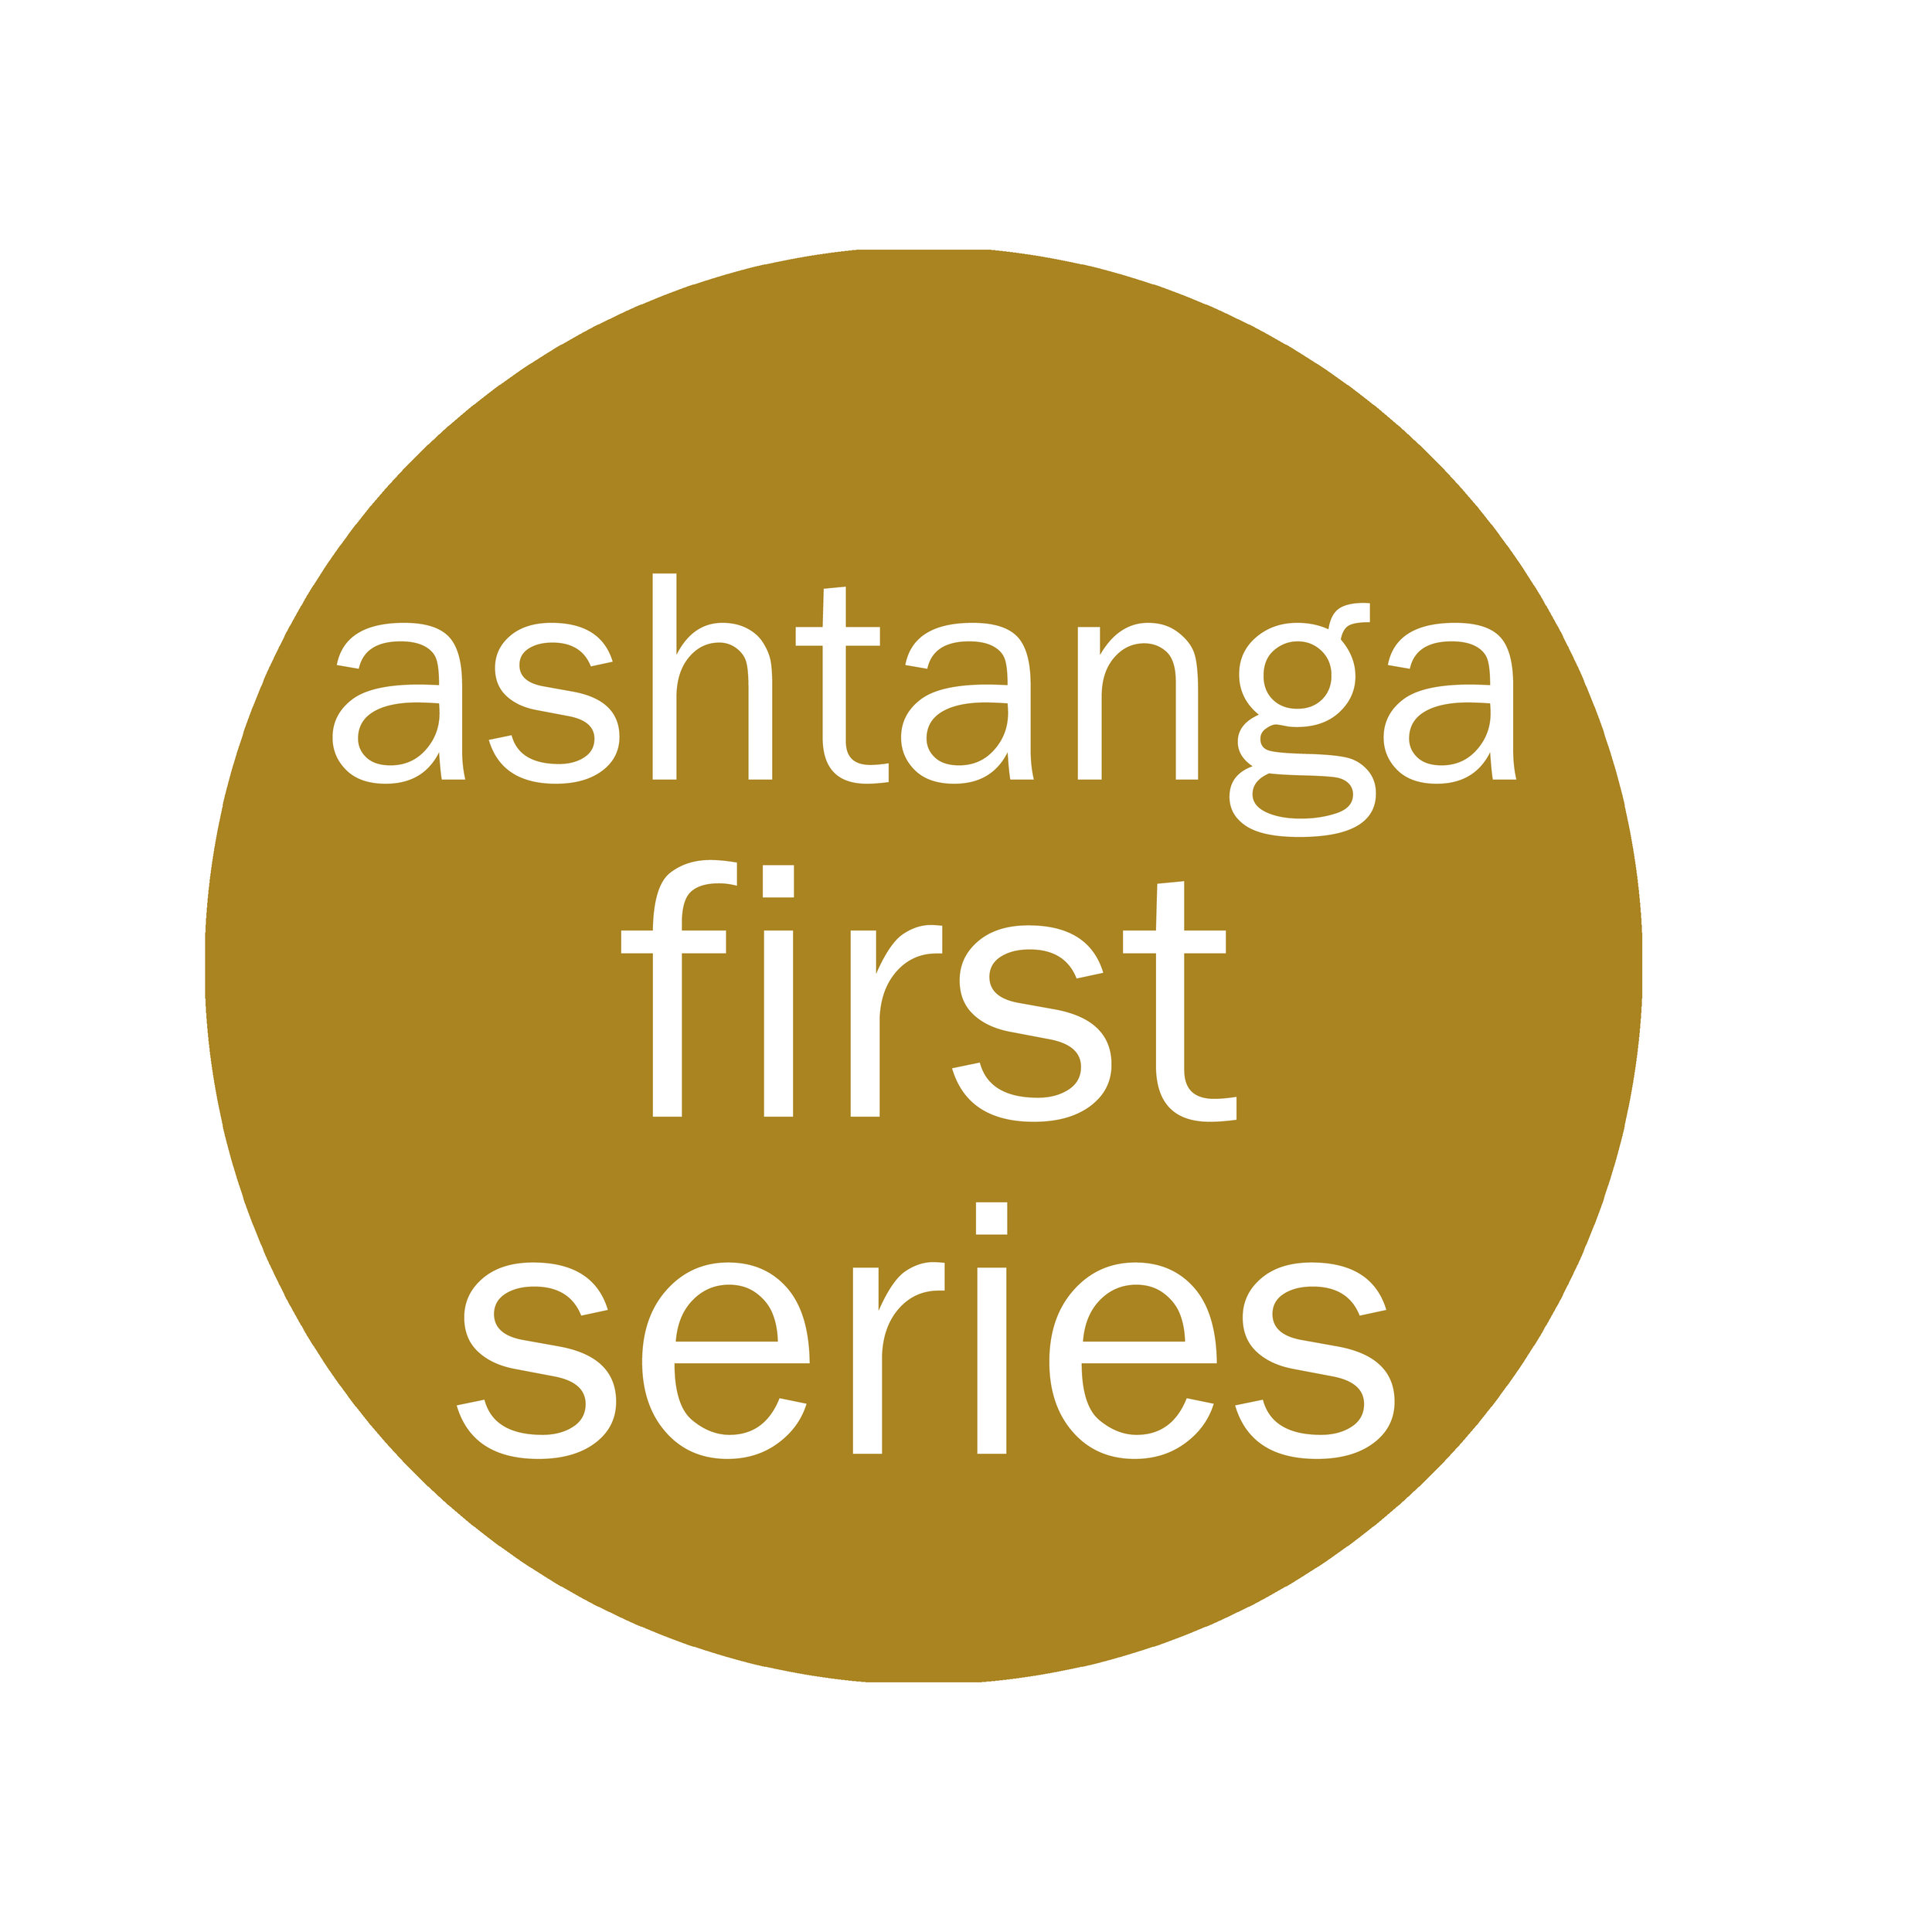 In First Series classes, the entire primary series of Ashtanga Yoga is practiced together, moving through sun salutations, standing postures, and balancing poses,as called by the teacher. This is a 90 minute practice designed for those with some knowledge of the primary series.     SATURDAYS at 8:30a with Carol.